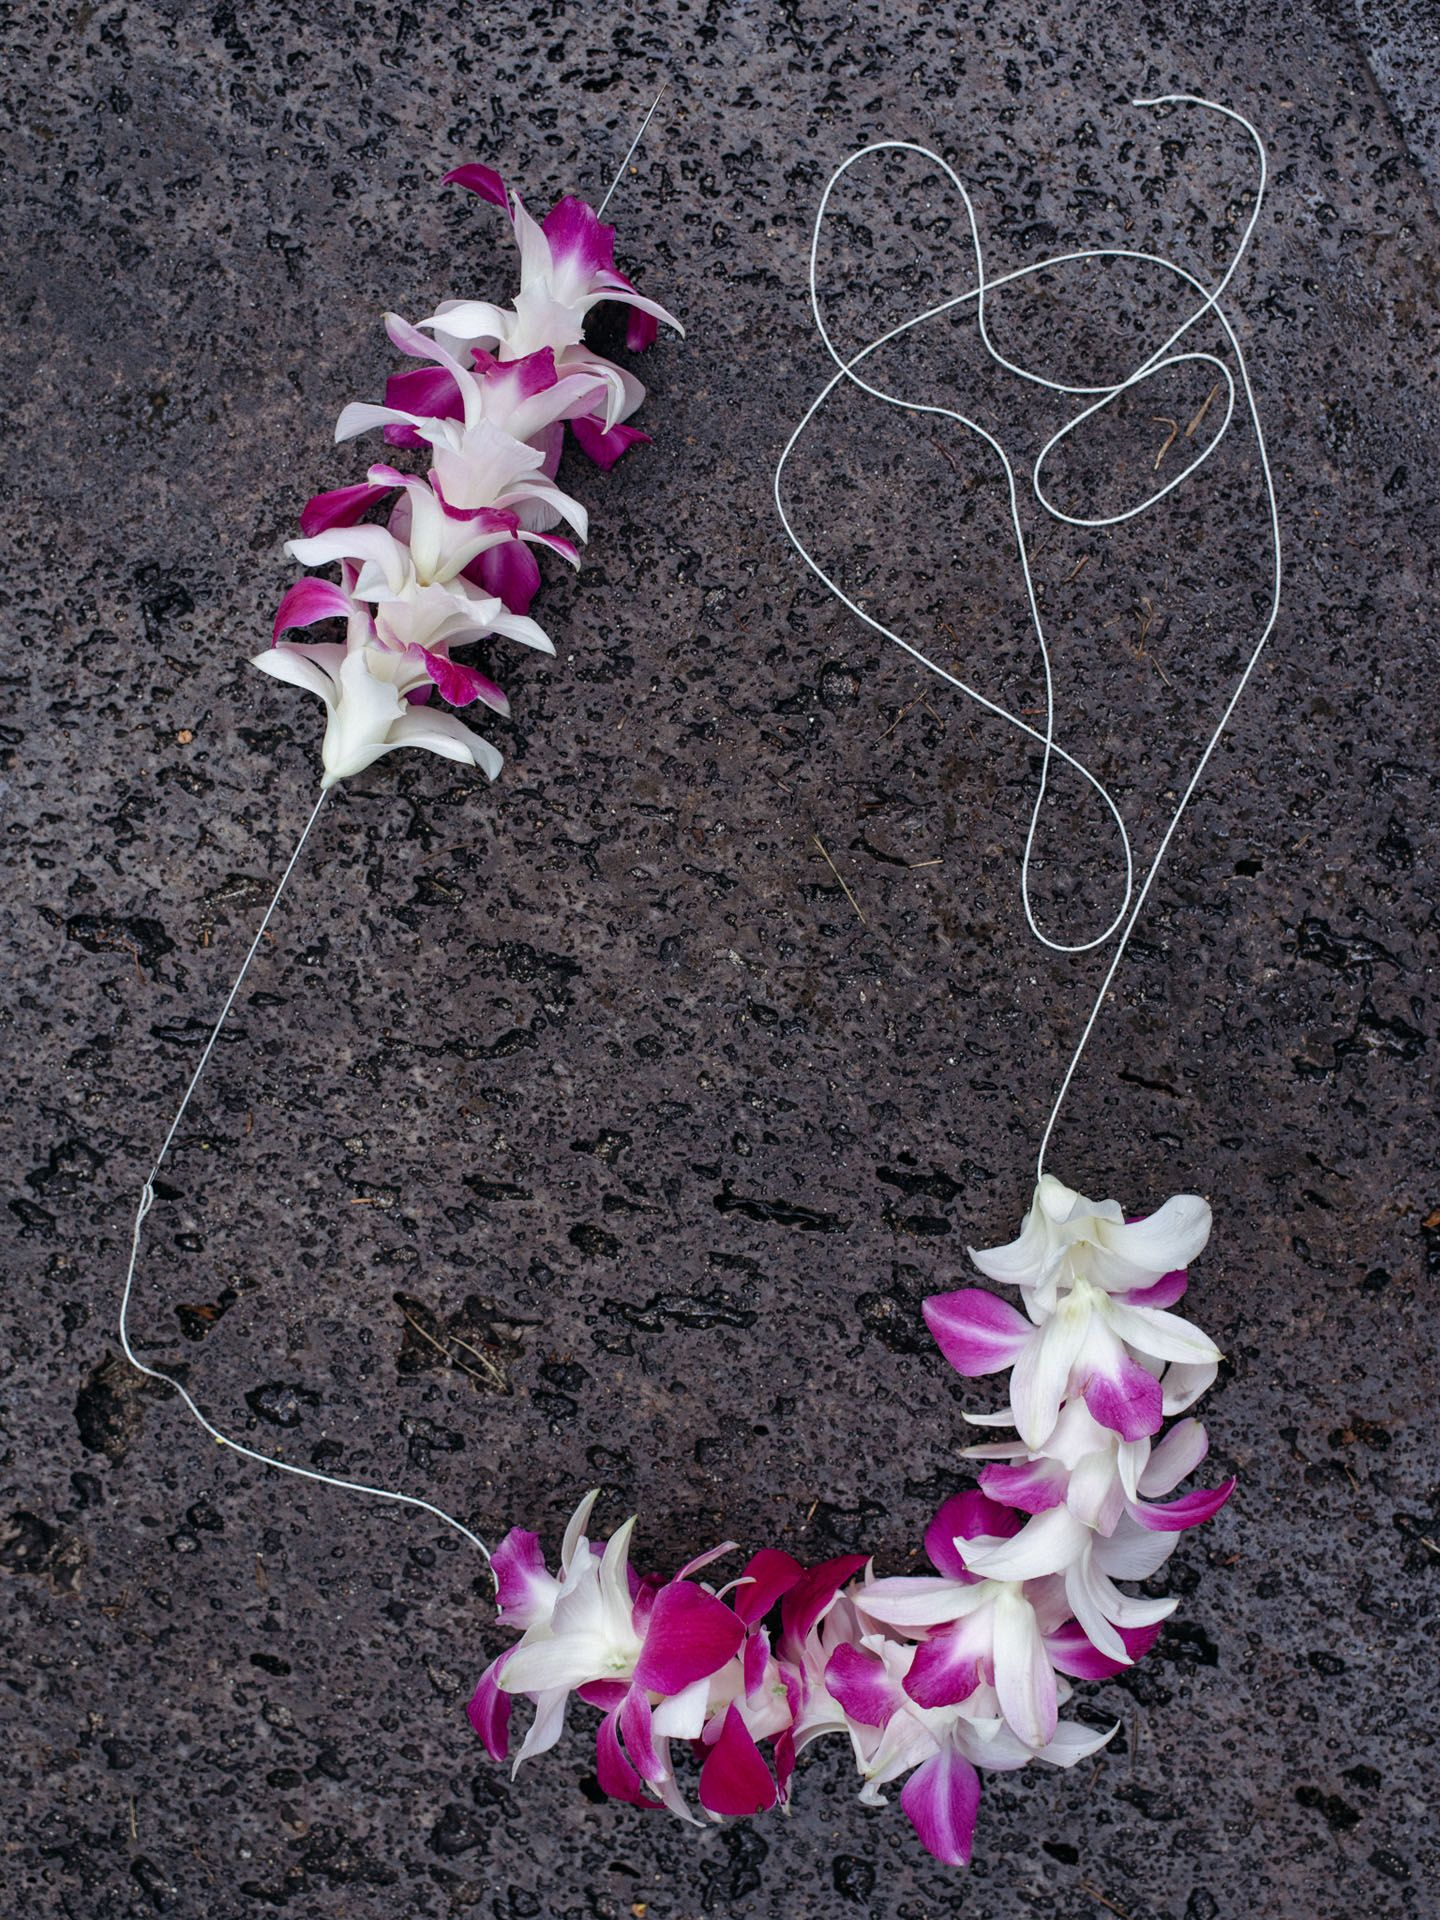 orchids flowers getting threaded with needle to make a lei flower necklace by Alexi Hobbs in Hawaii for enRoute Magazine